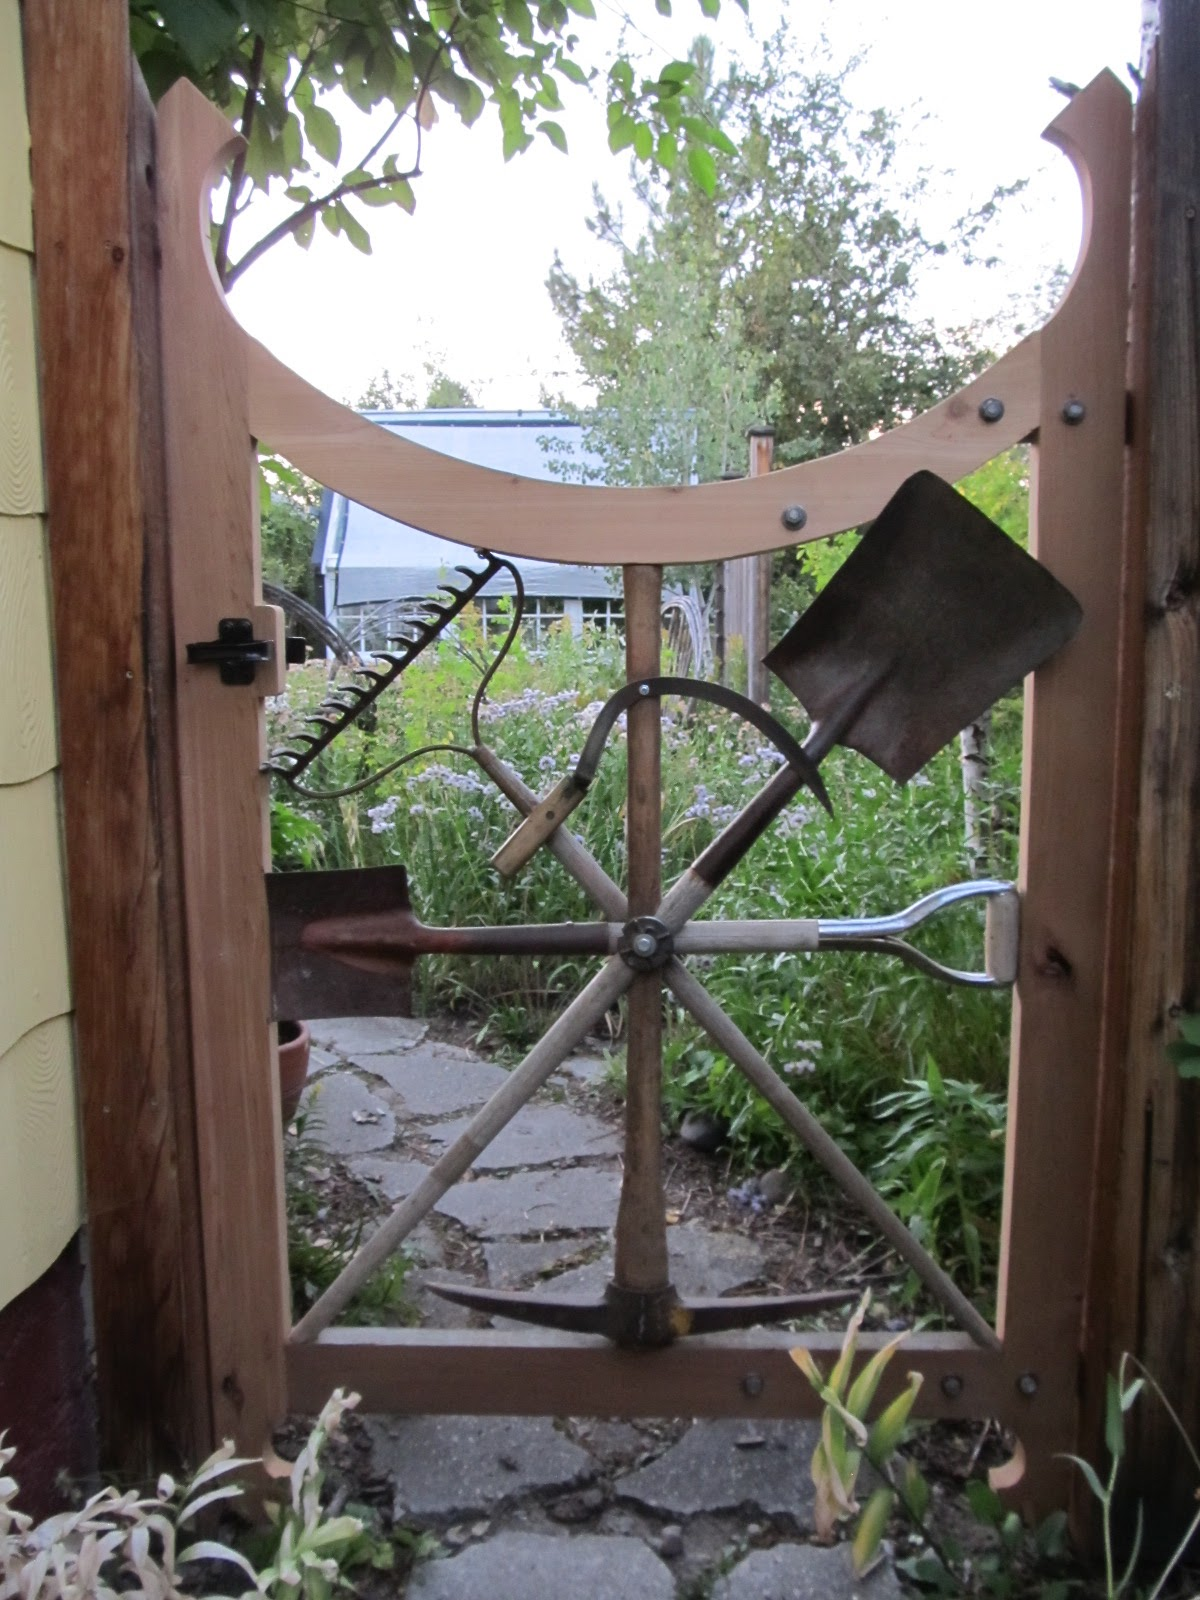 Montana wildlife gardener a repurposed garden tool for Diy fence gate designs